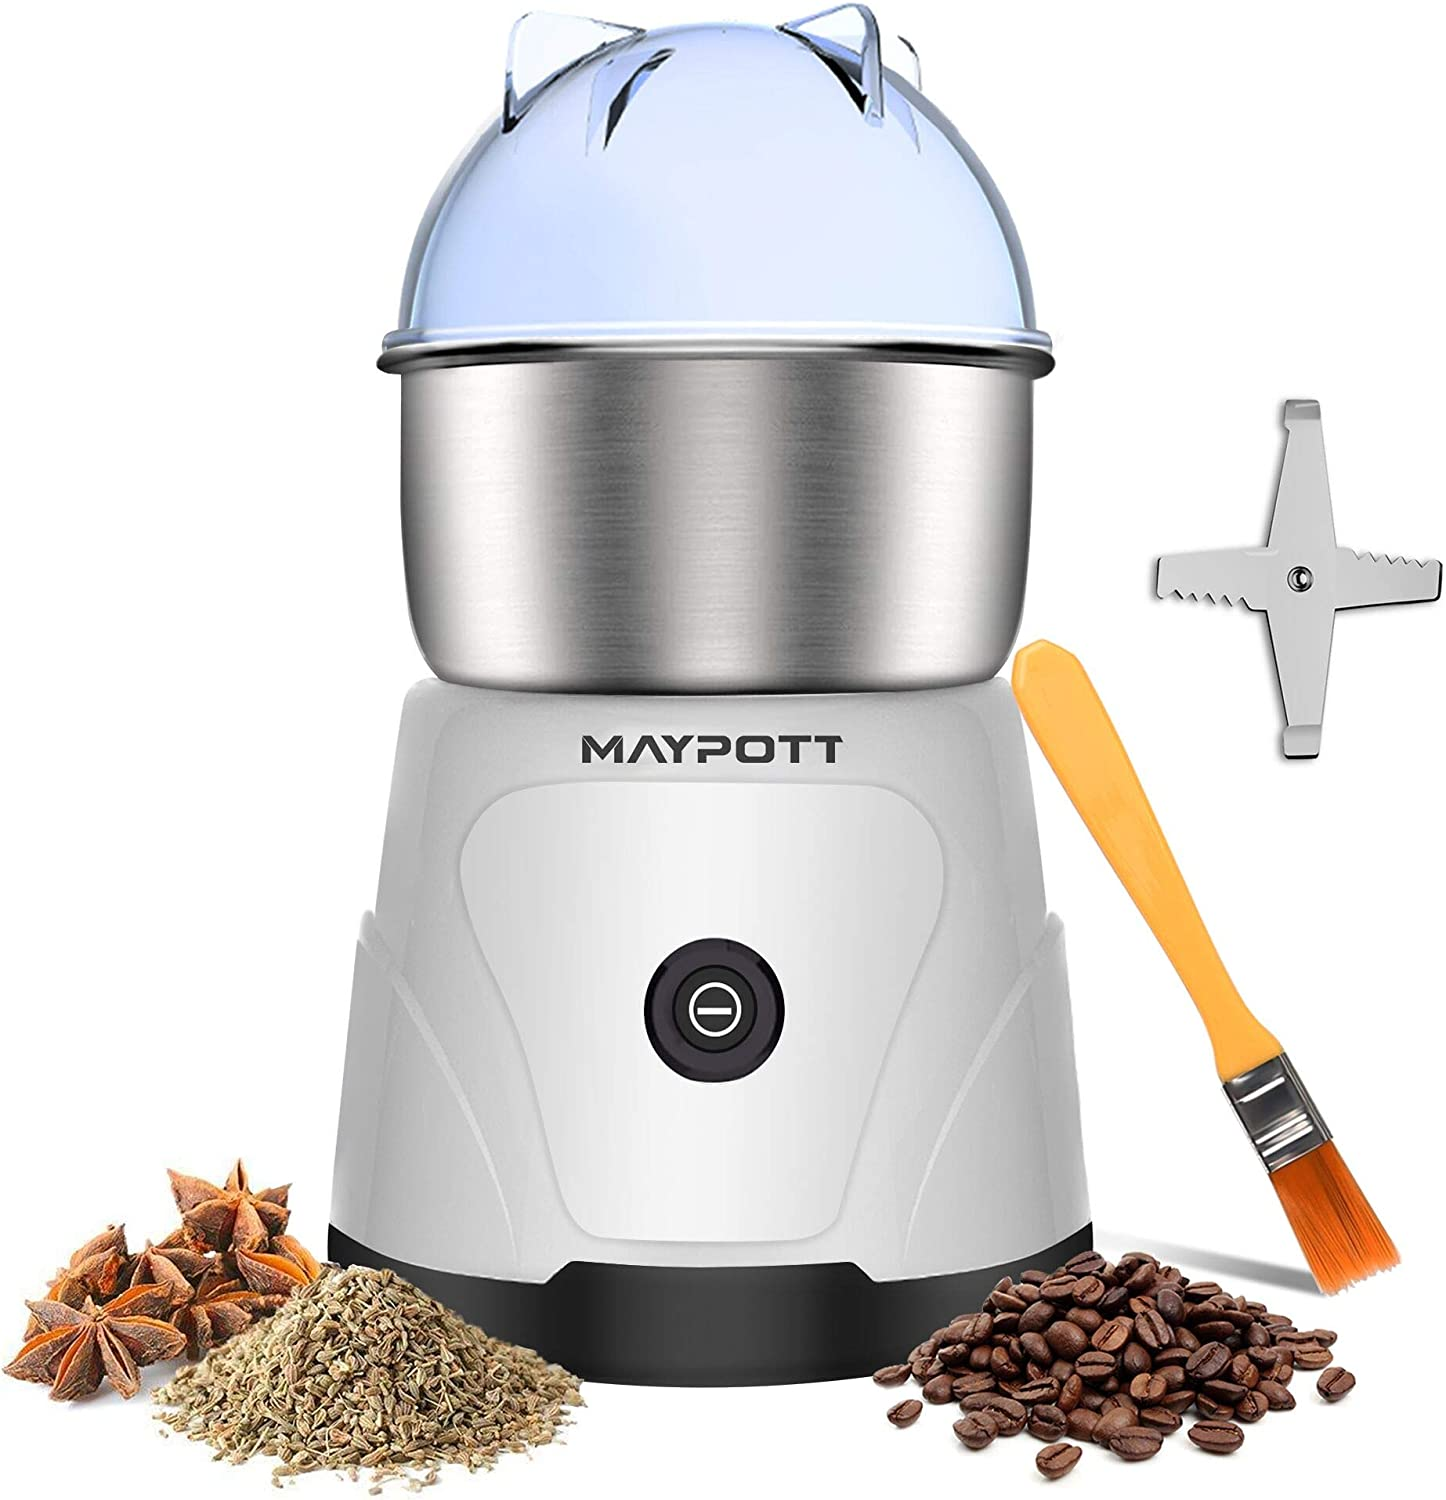 Coffee Grinder Electric Spice Grinder, Maypott 200W Stainless Steel Blade Coffee Bean Grinder 3.5oz Capacity with Cleaning Brush, Electric Mills for Coffee Beans, Spice, Nut, Seeds, Grains(White)